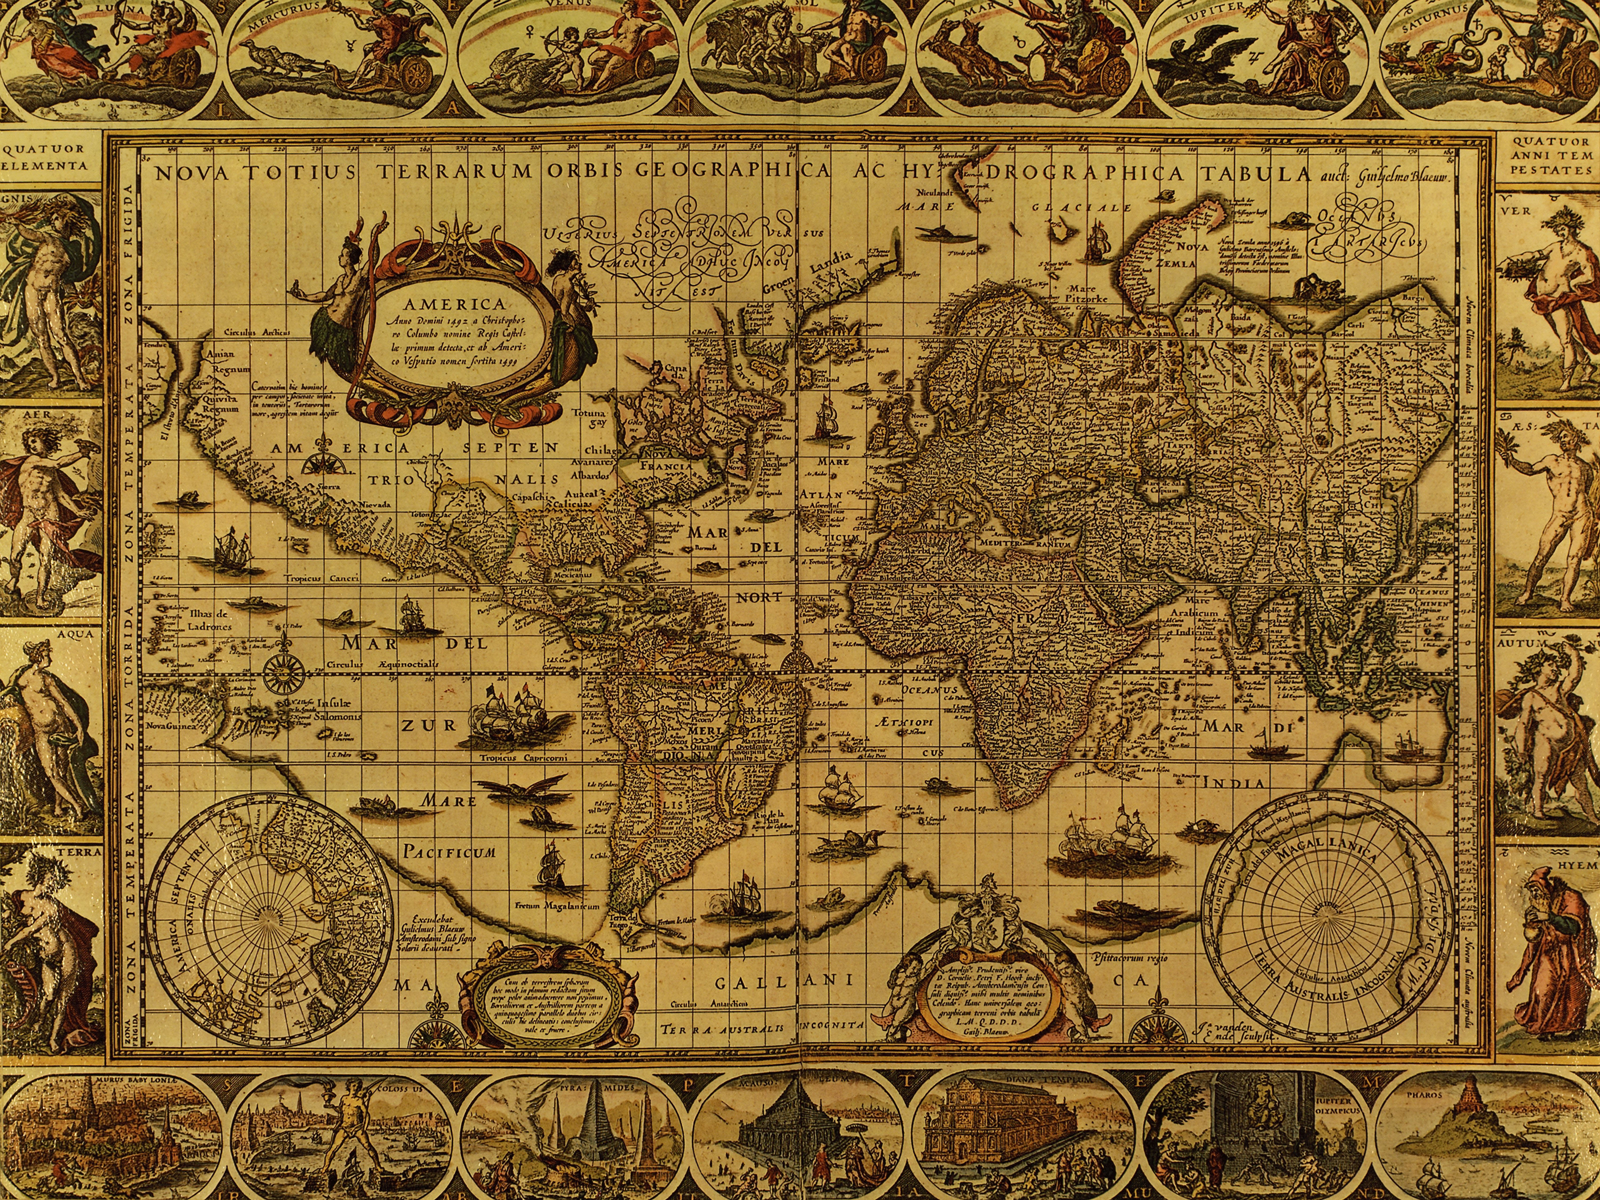 Old world map wallpaper wallpapersafari old world maps wallpapers 1600x1200 gumiabroncs Images